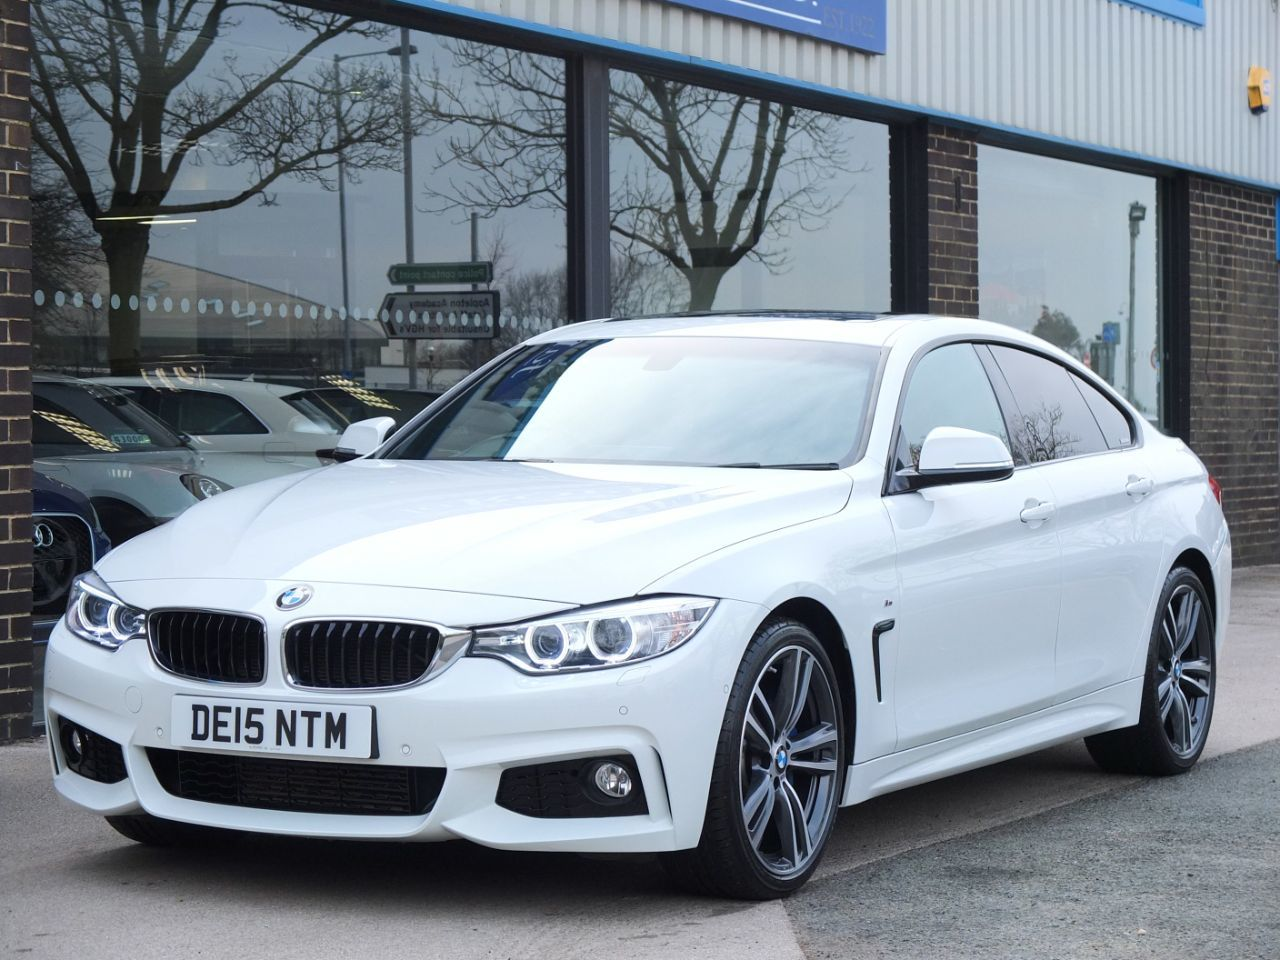 BMW 4 Series 2.0 420i Gran Coupe M Sport Plus Auto Coupe Petrol Alpine WhiteBMW 4 Series 2.0 420i Gran Coupe M Sport Plus Auto Coupe Petrol Alpine White at fa Roper Ltd Bradford